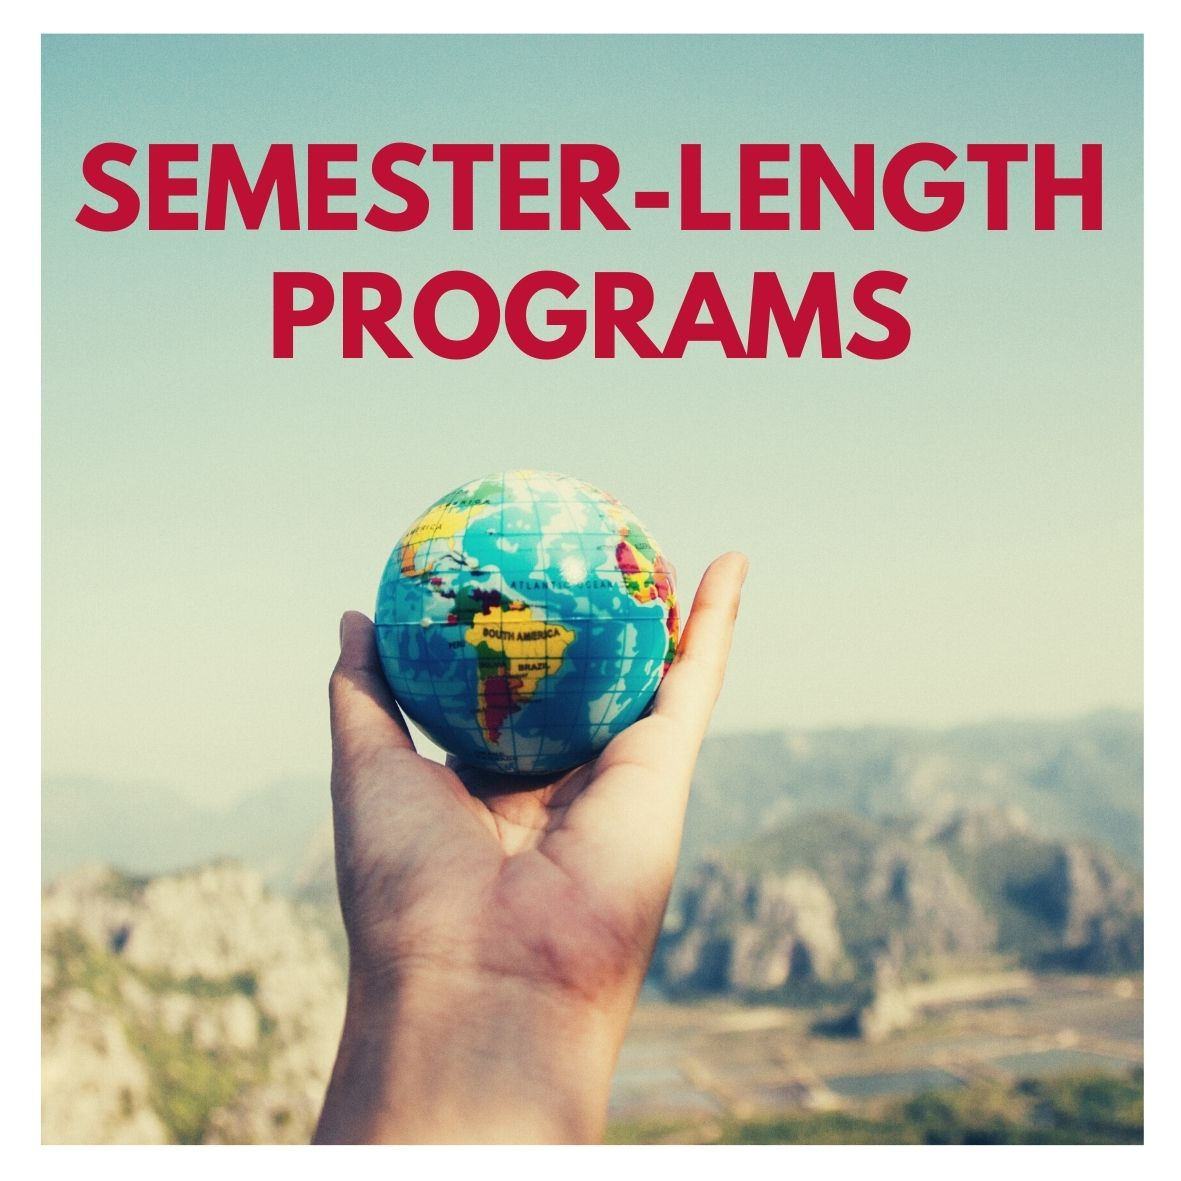 Semester-length programs